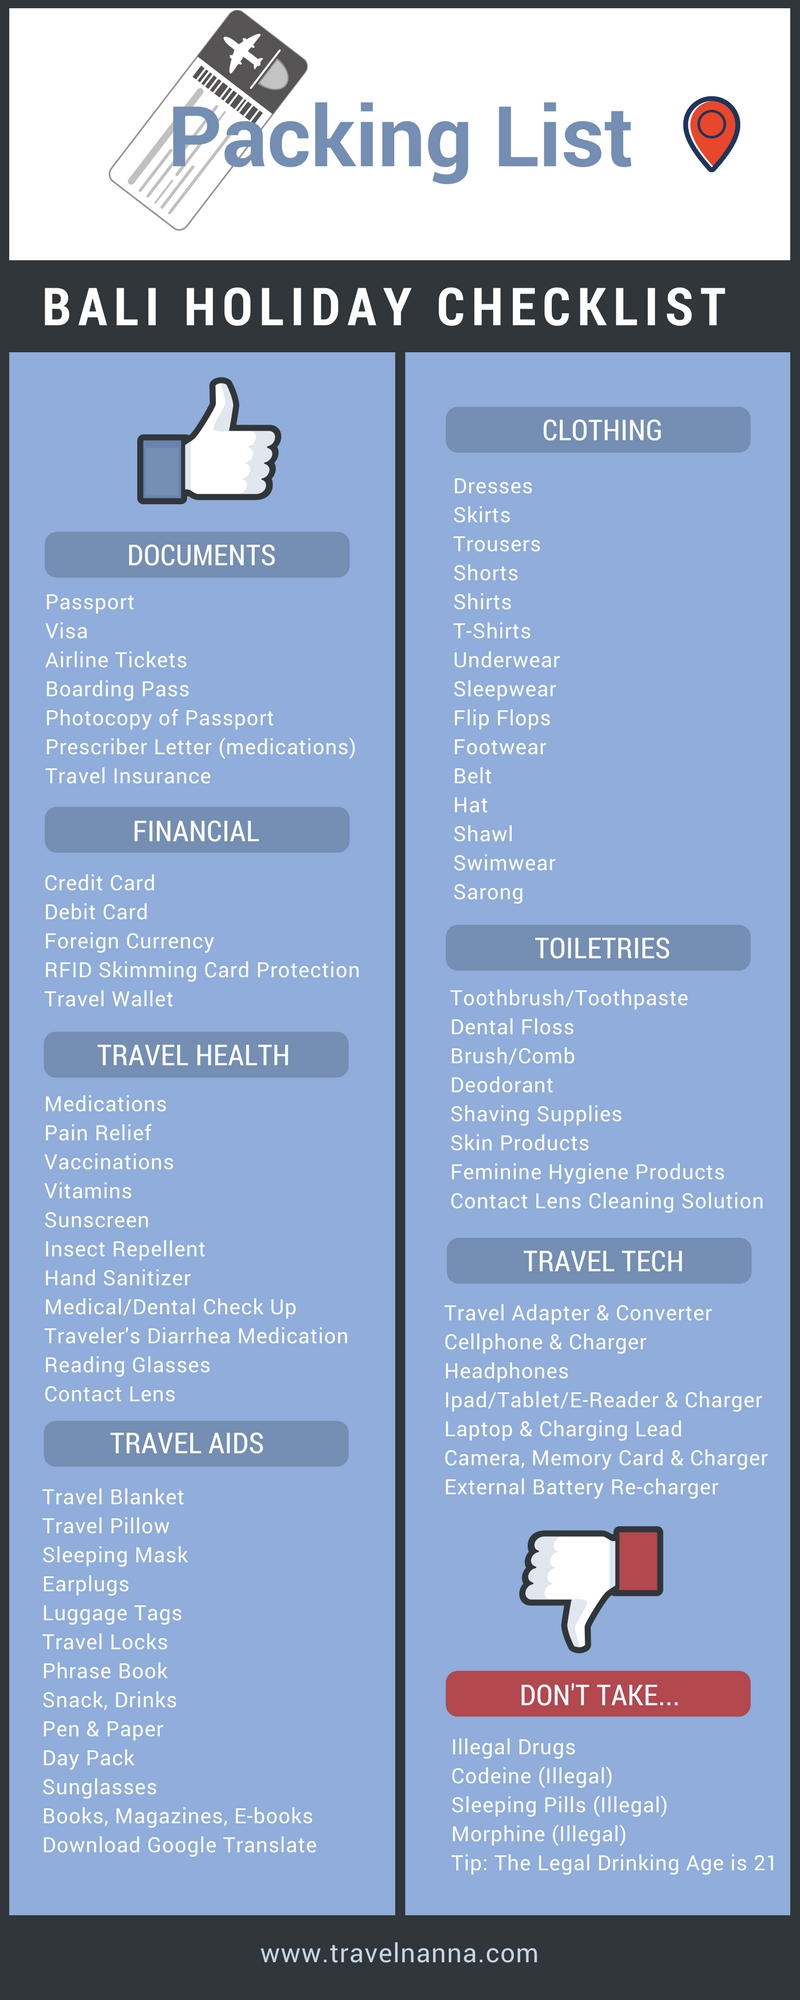 Bali-Holiday-Packing-Checklist-Infographic-www.travelnanna.com